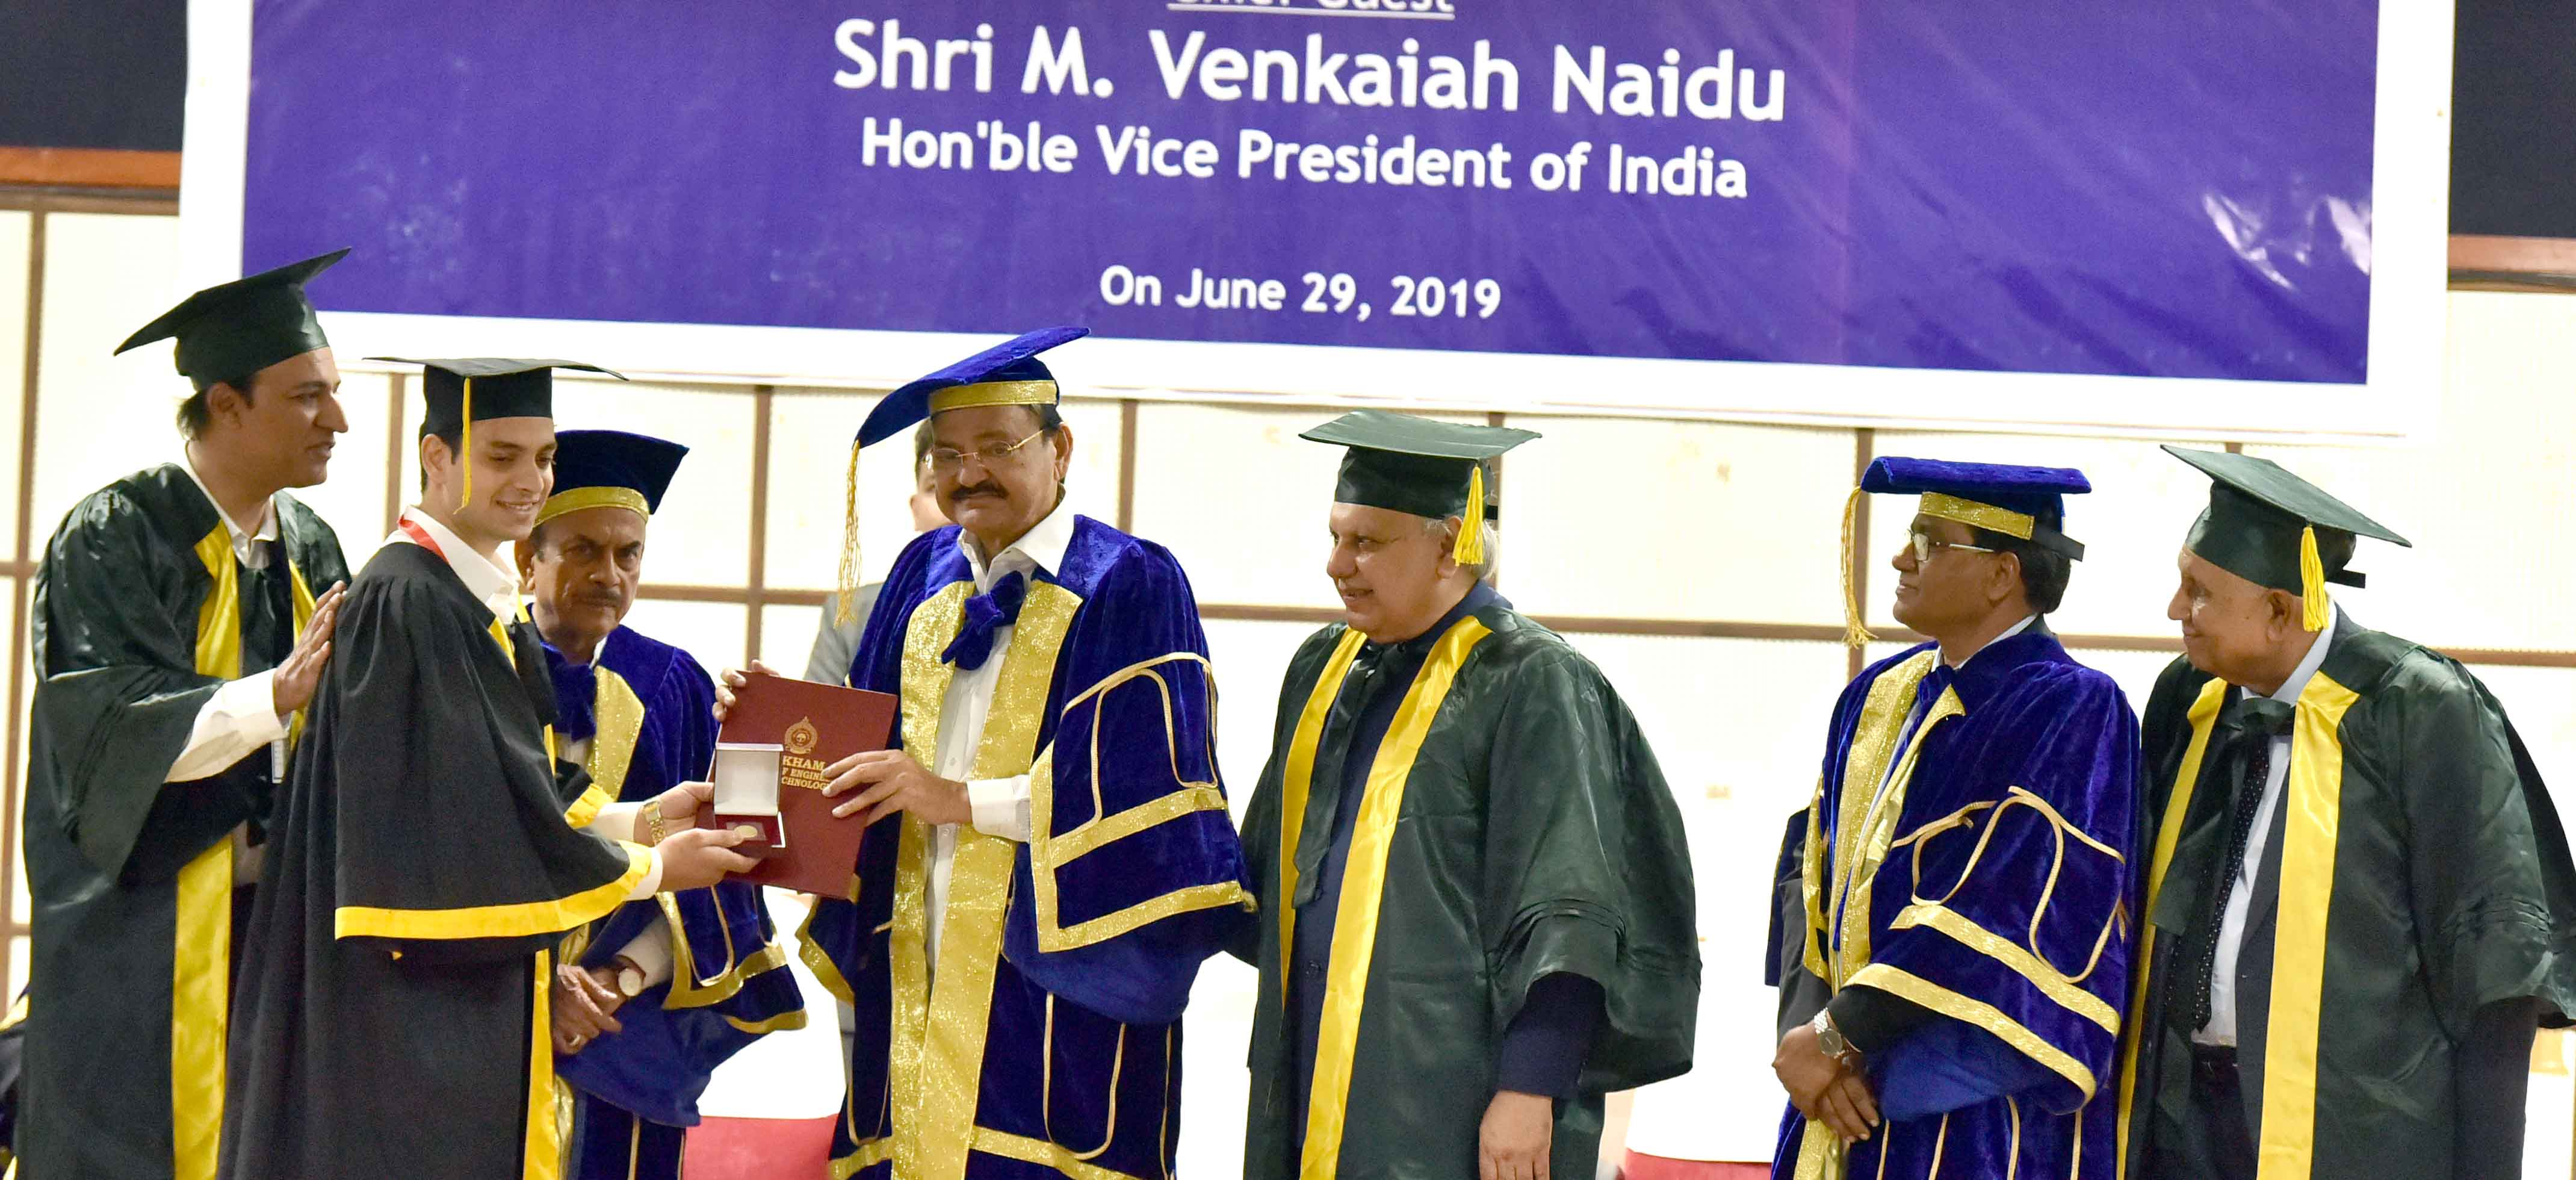 Media-Plus-PR-Campaign-Vice-President-of-India-Venkaih-Naidu